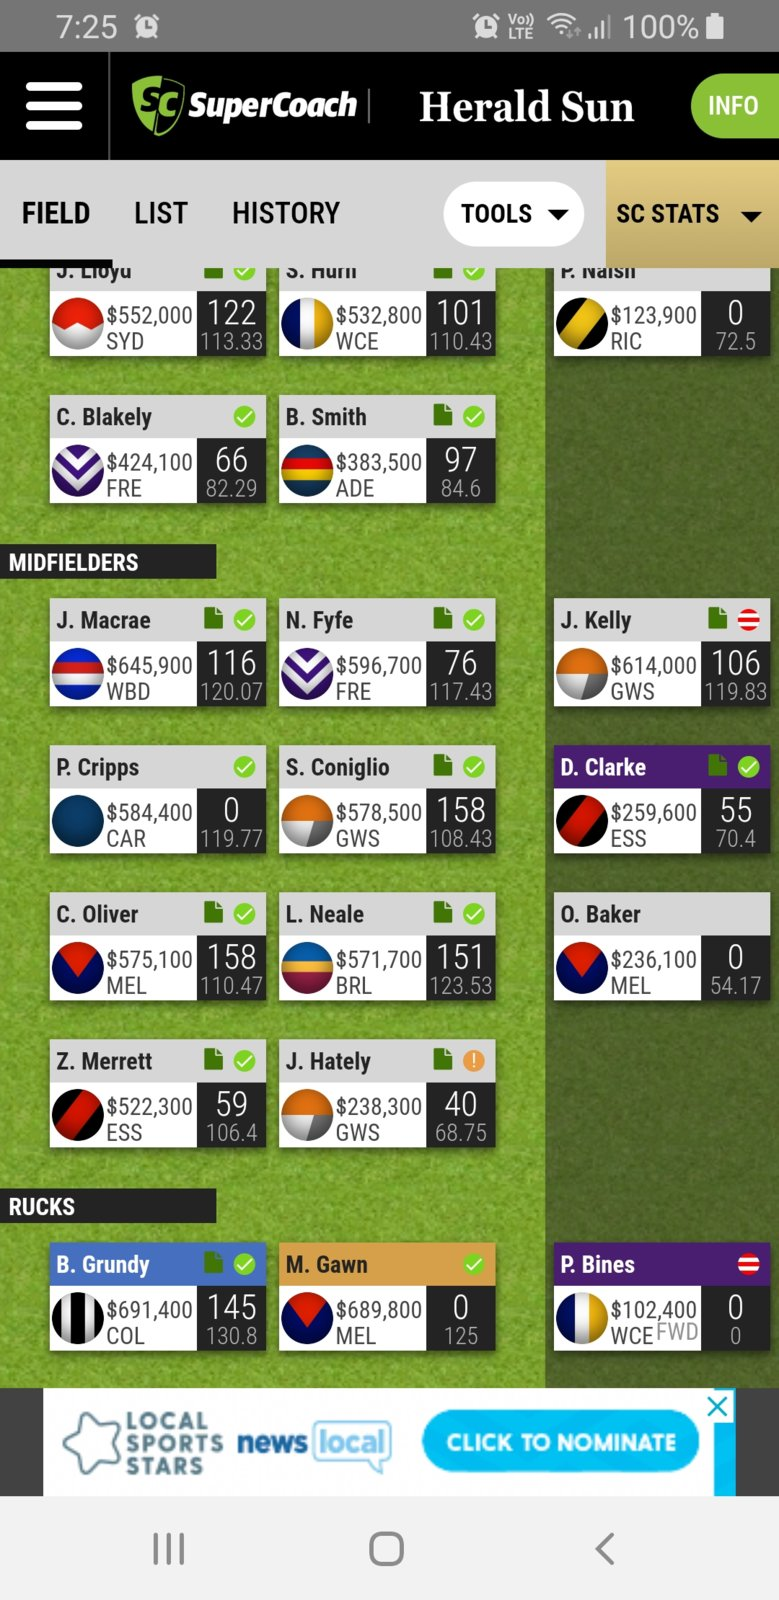 Screenshot_20190712-072538_SuperCoach.jpg